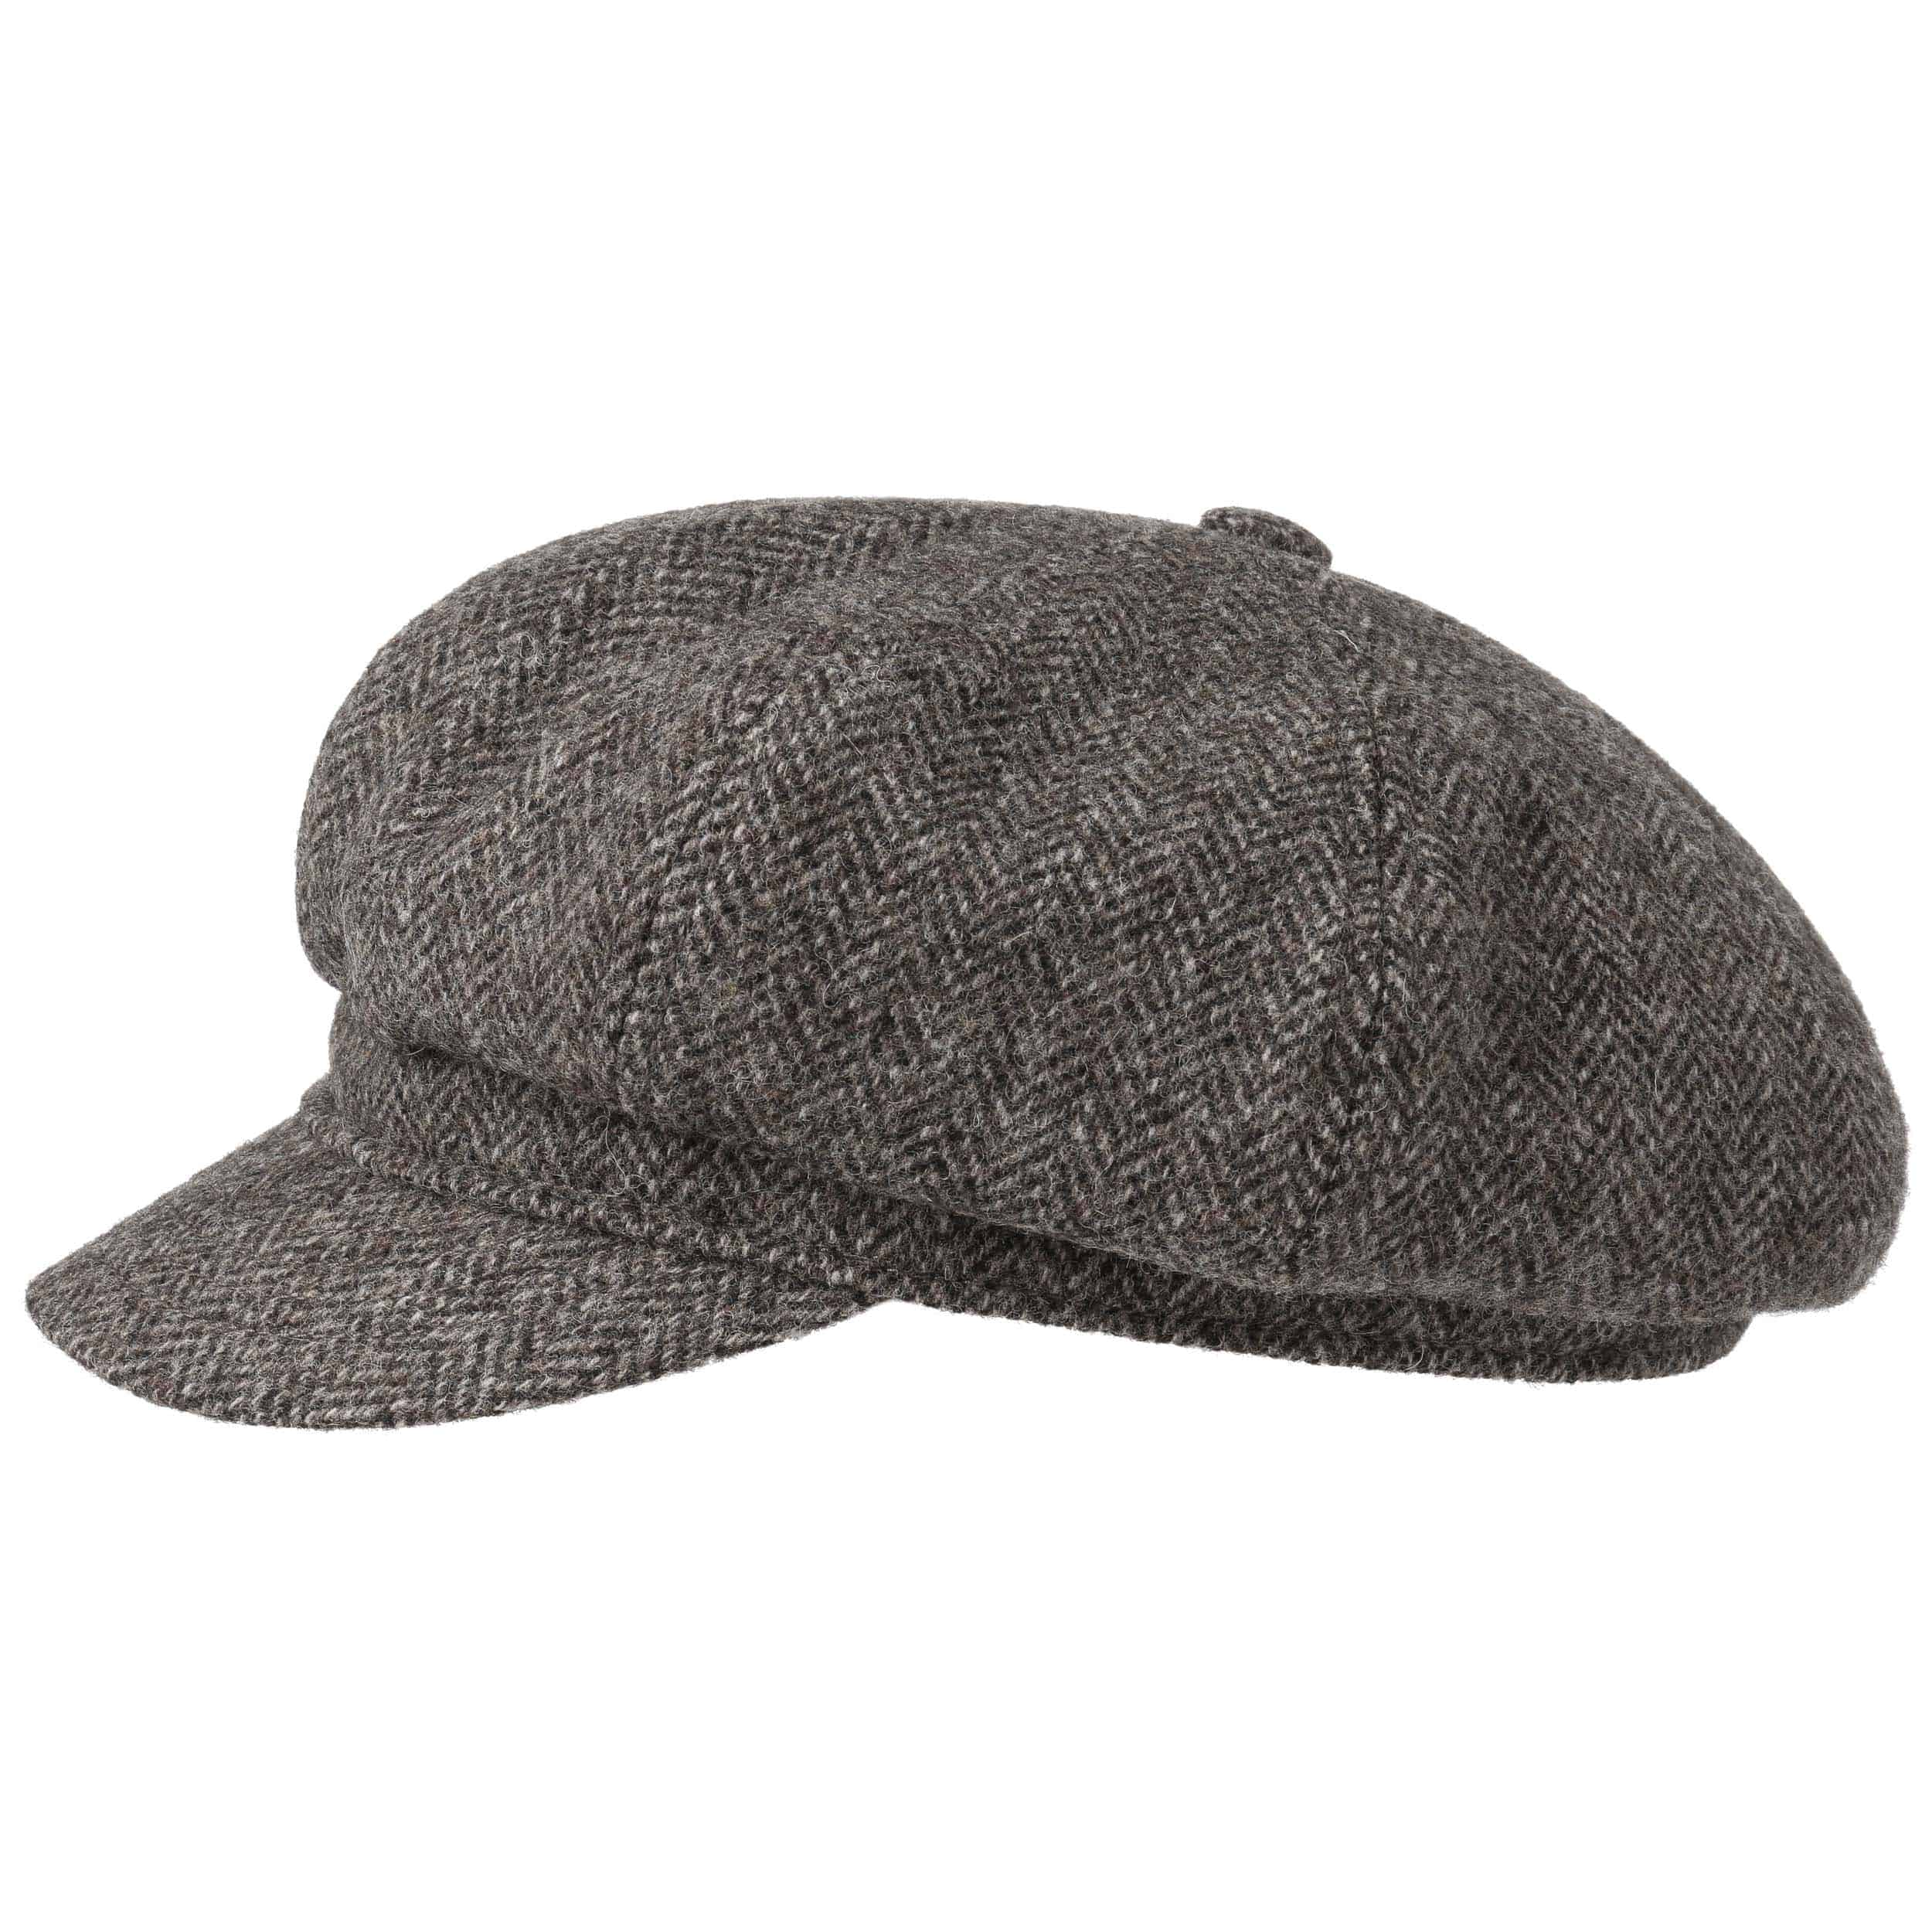 ... Berretto 8-Panel Woolrich by Stetson - marrone 6 ... 8595ff7e4f9d